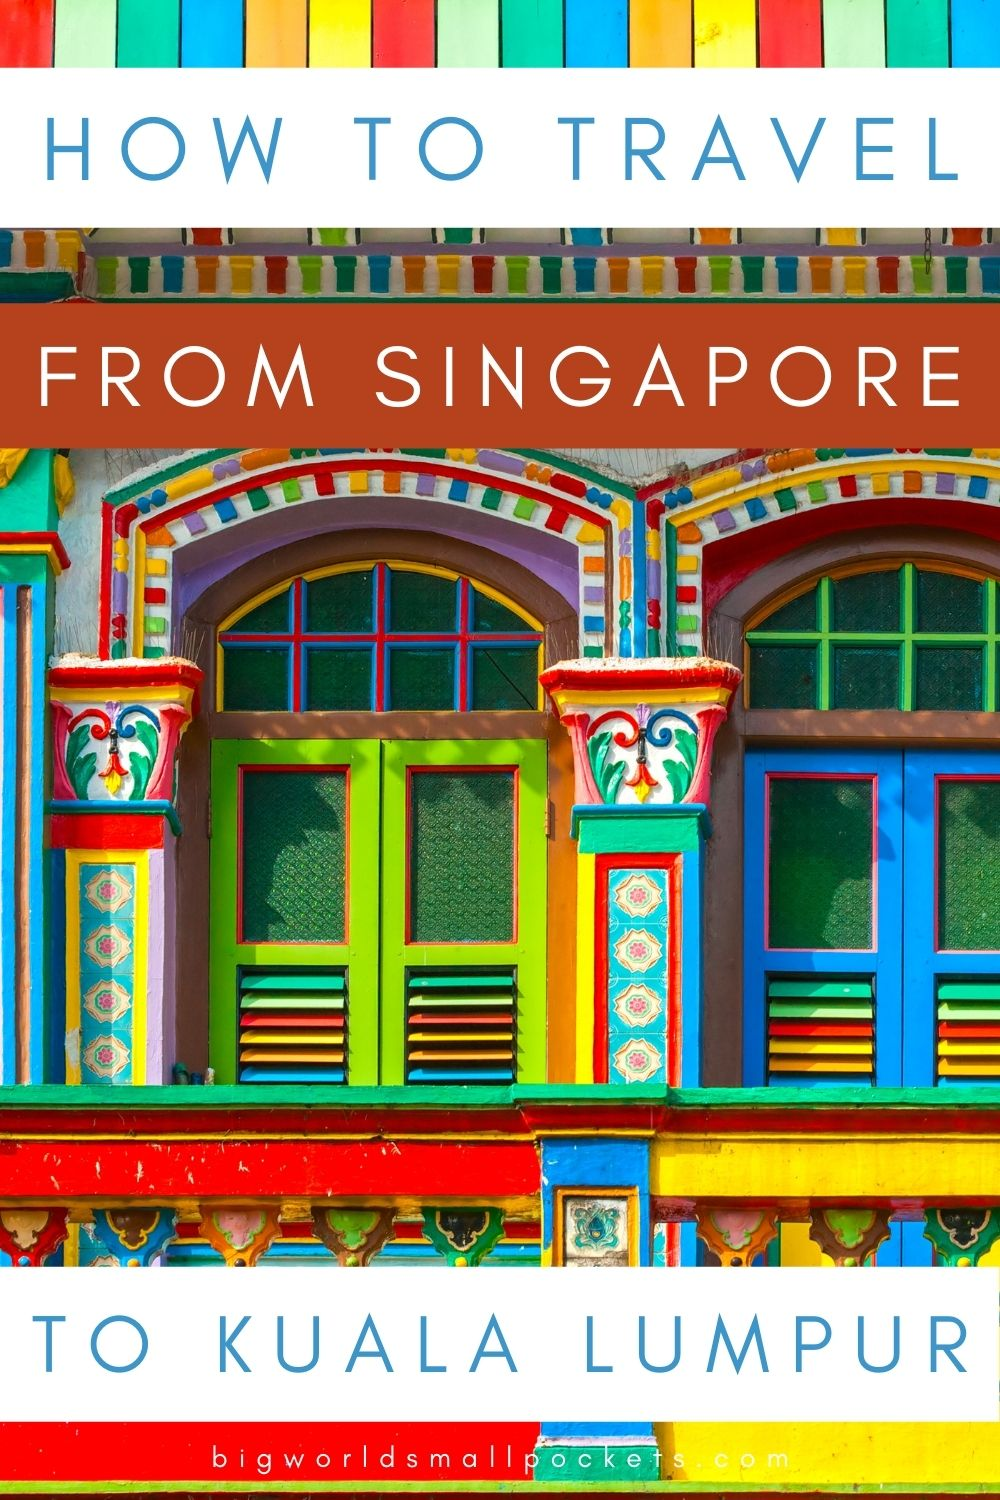 How to Travel from Singapore to Kuala Lumpur